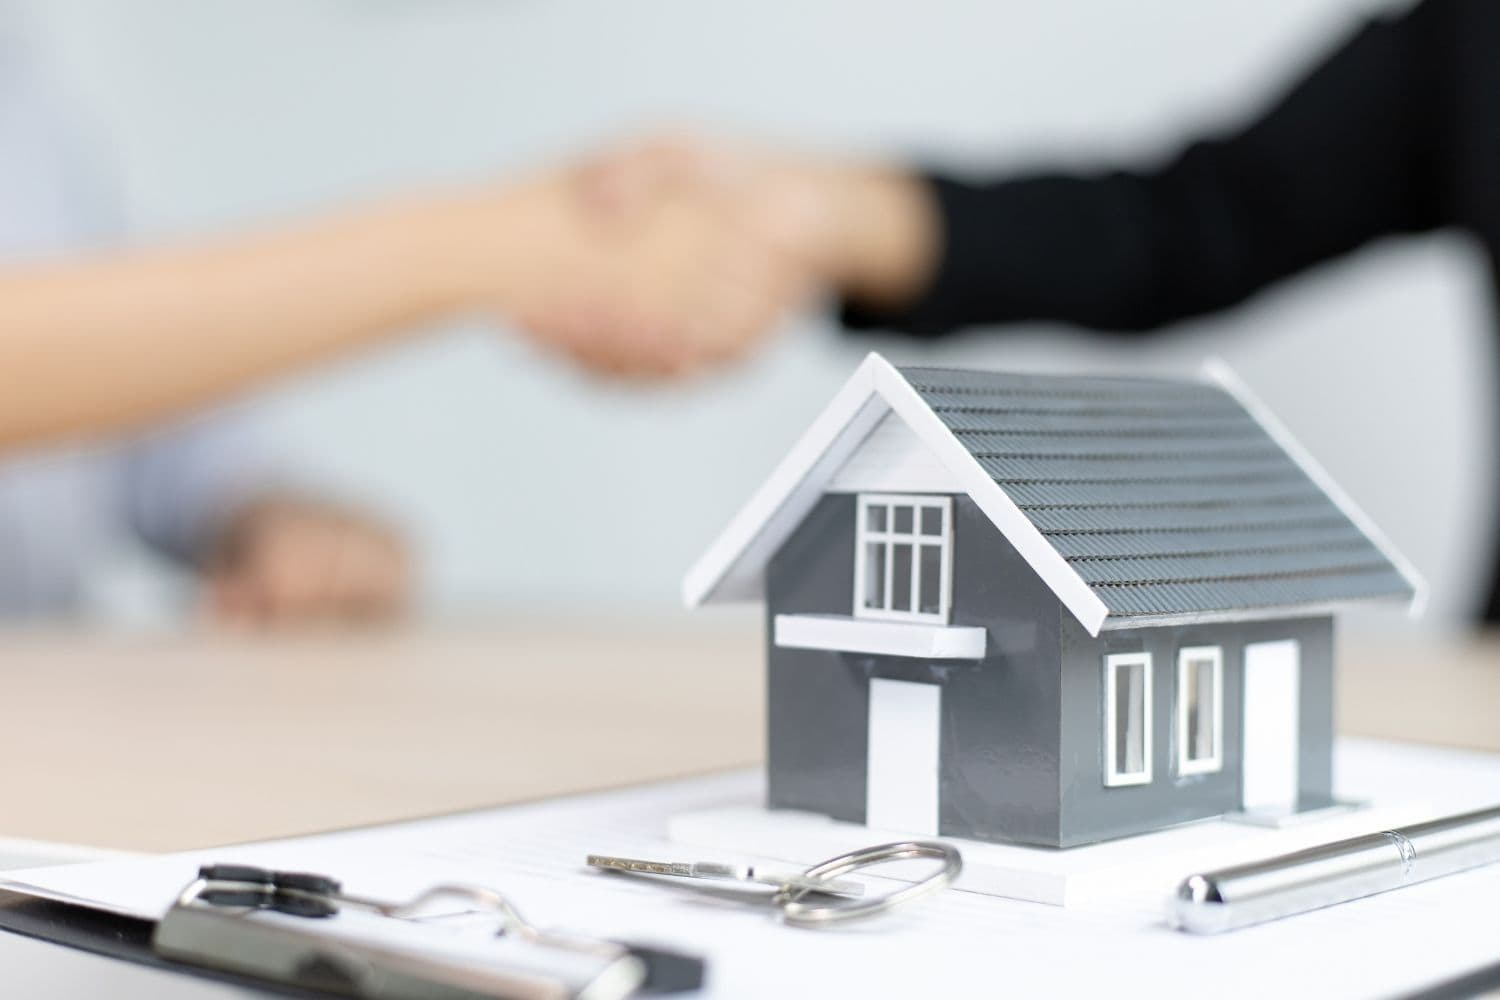 What to consider when planning a house move